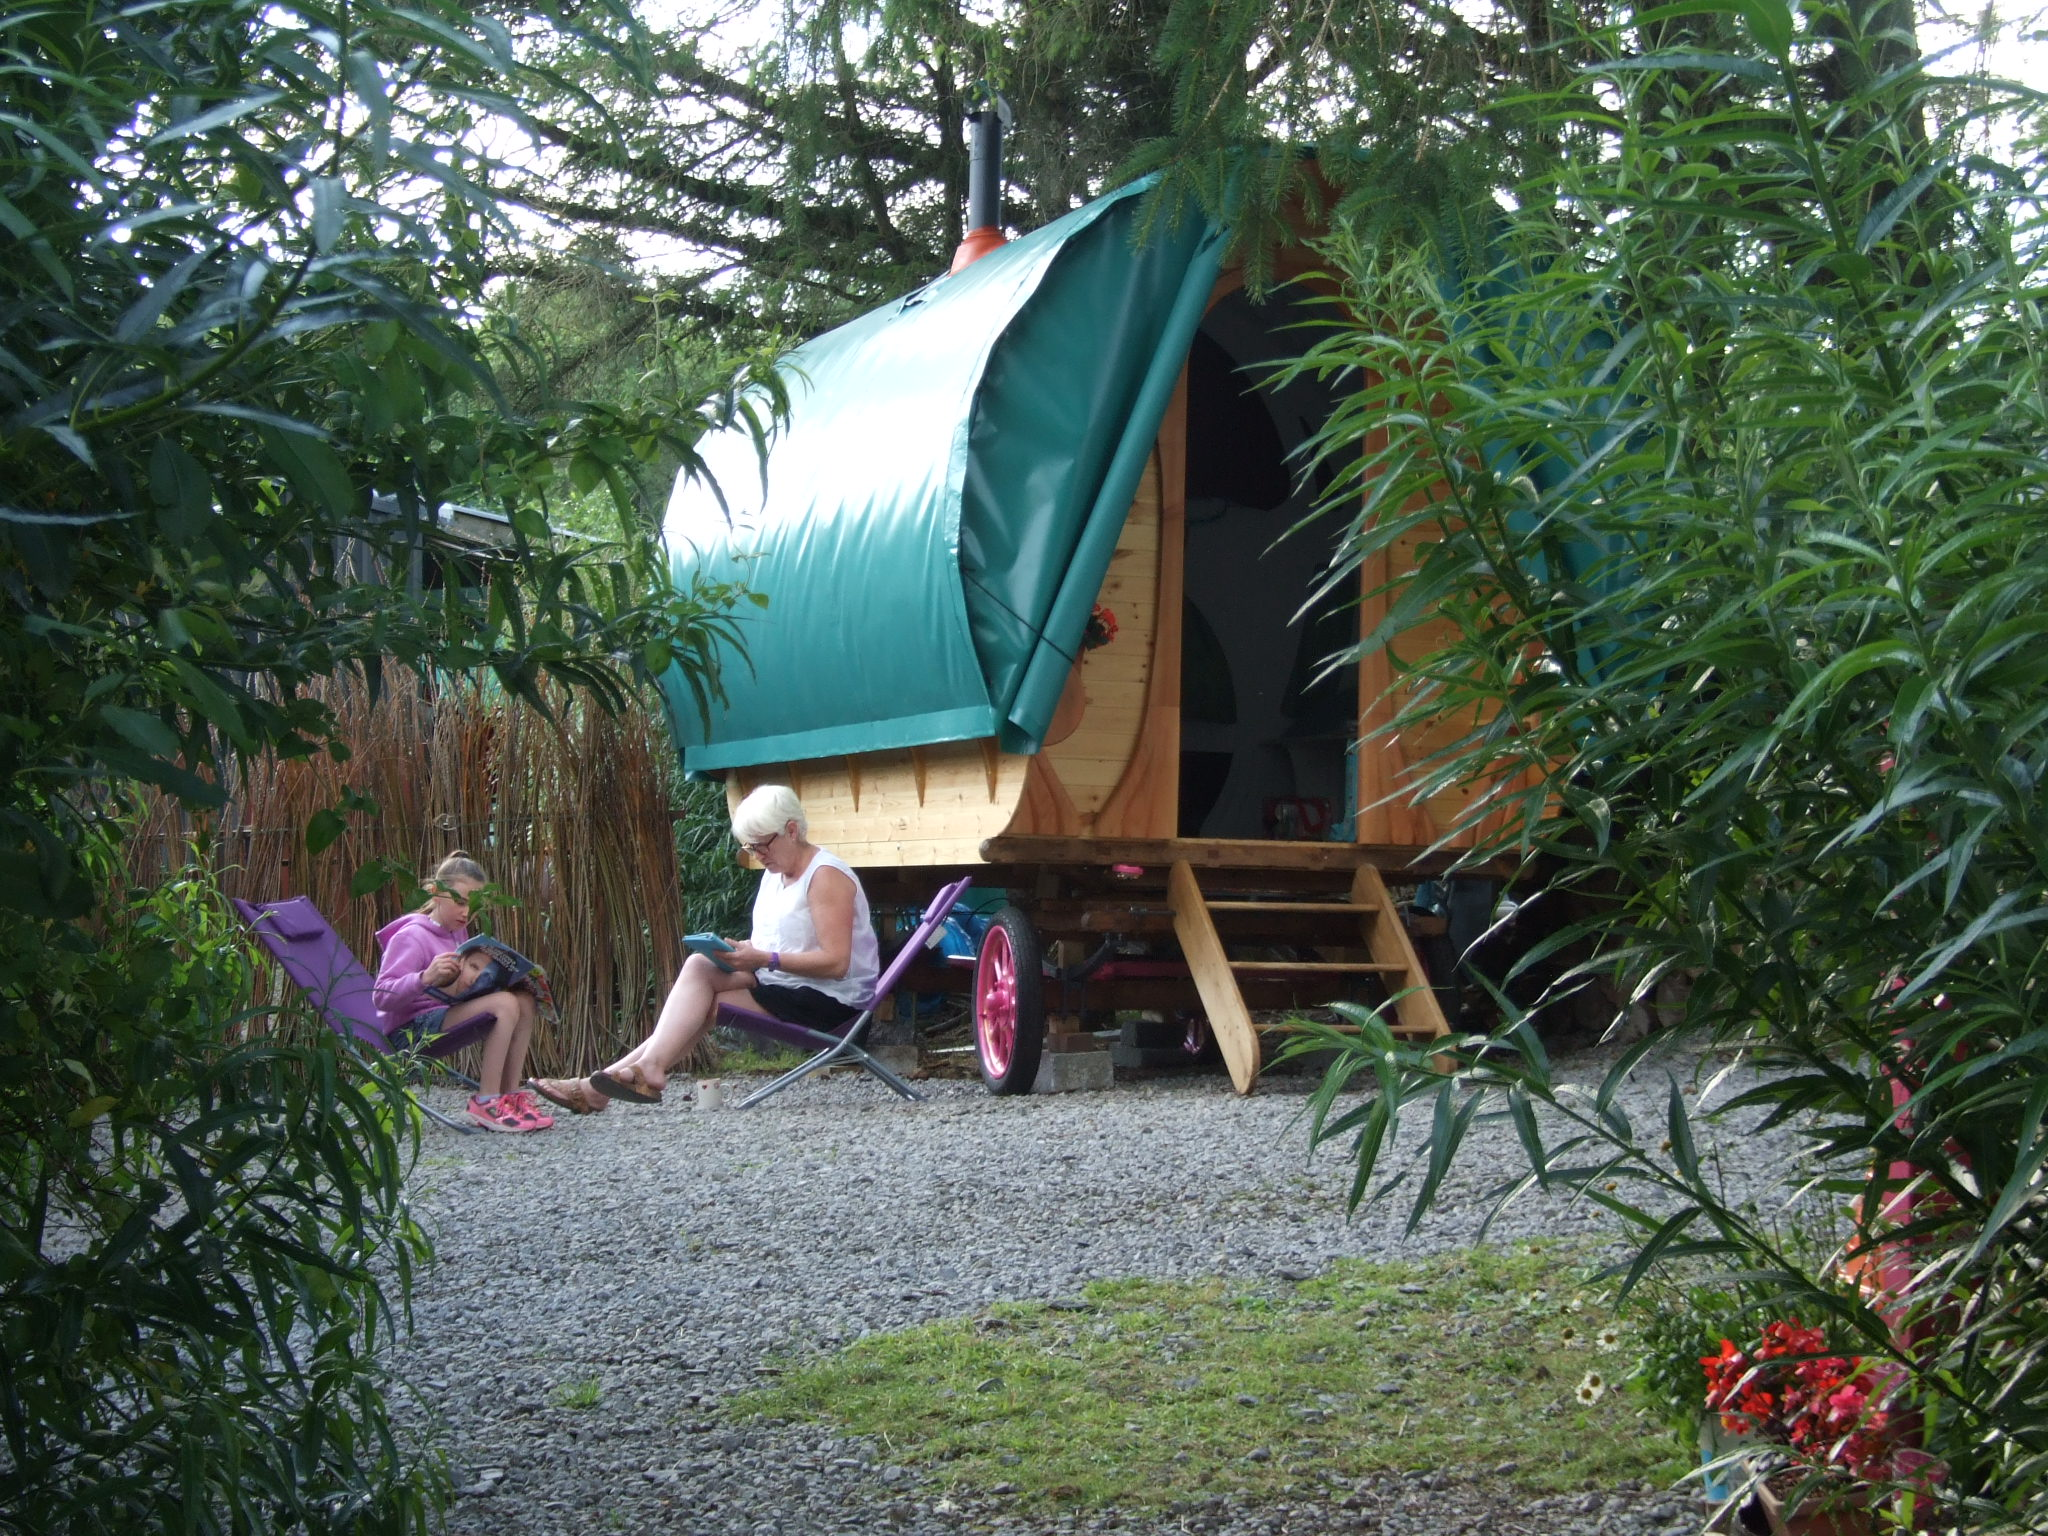 Summer Time at Glampsite. Gypsy Caravan. Butterfly nature, Corry, Leitrim 033